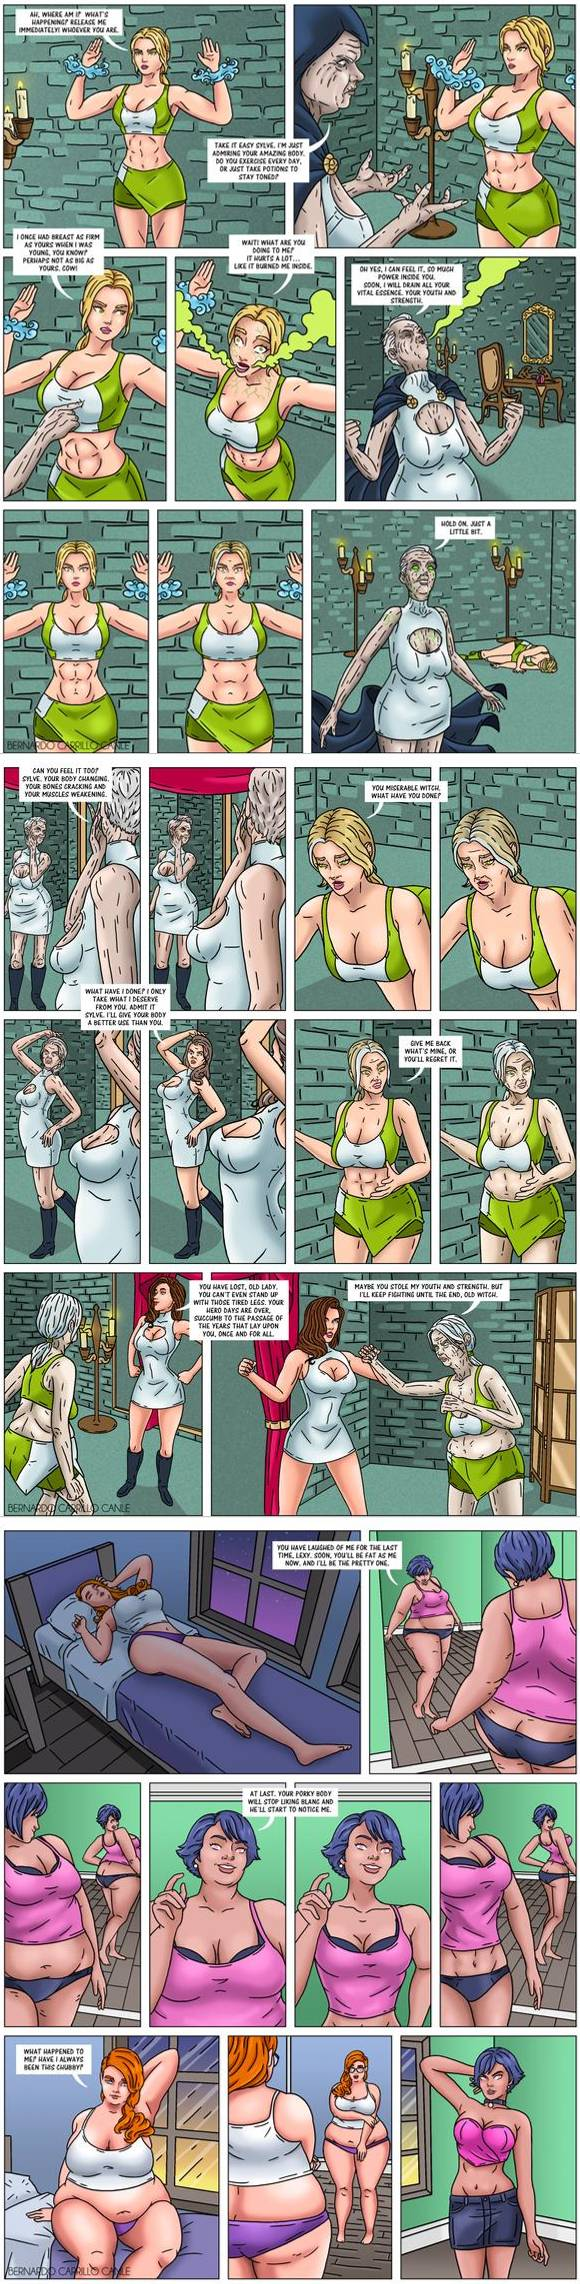 Fetish Comics Age Transformation Scenes A place for stories of your favourite bridezillas and advice on how to deal with them and not be one yourself! fetish comics age transformation scenes